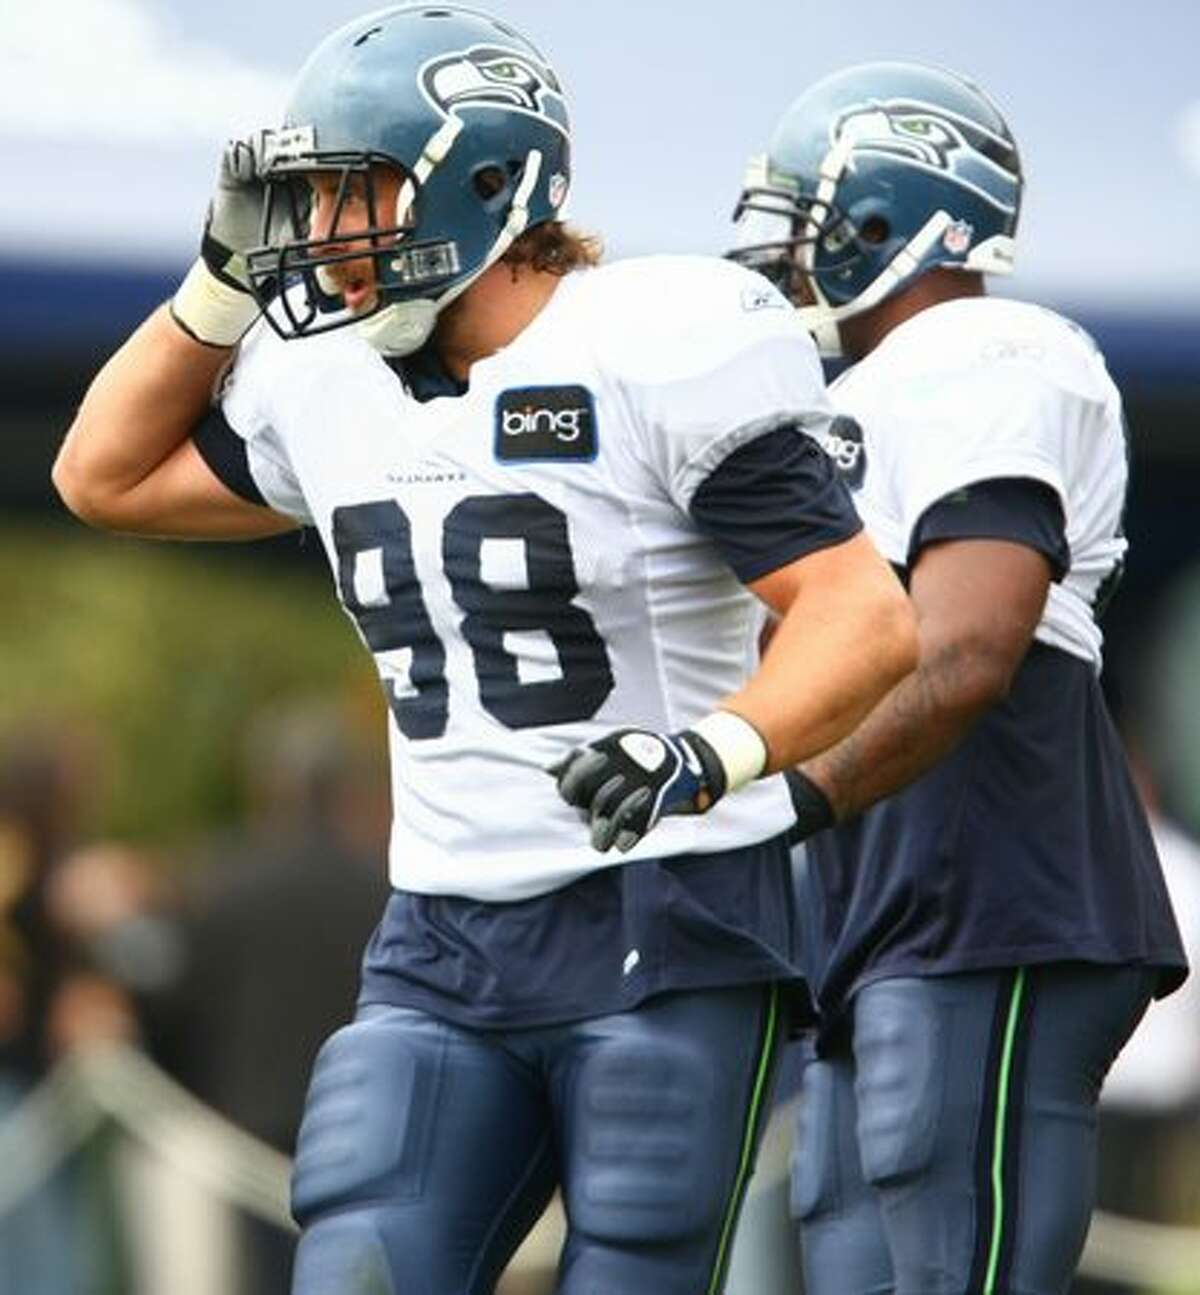 Seattle Seahawk Nick Reed practices with teammates during training camp.